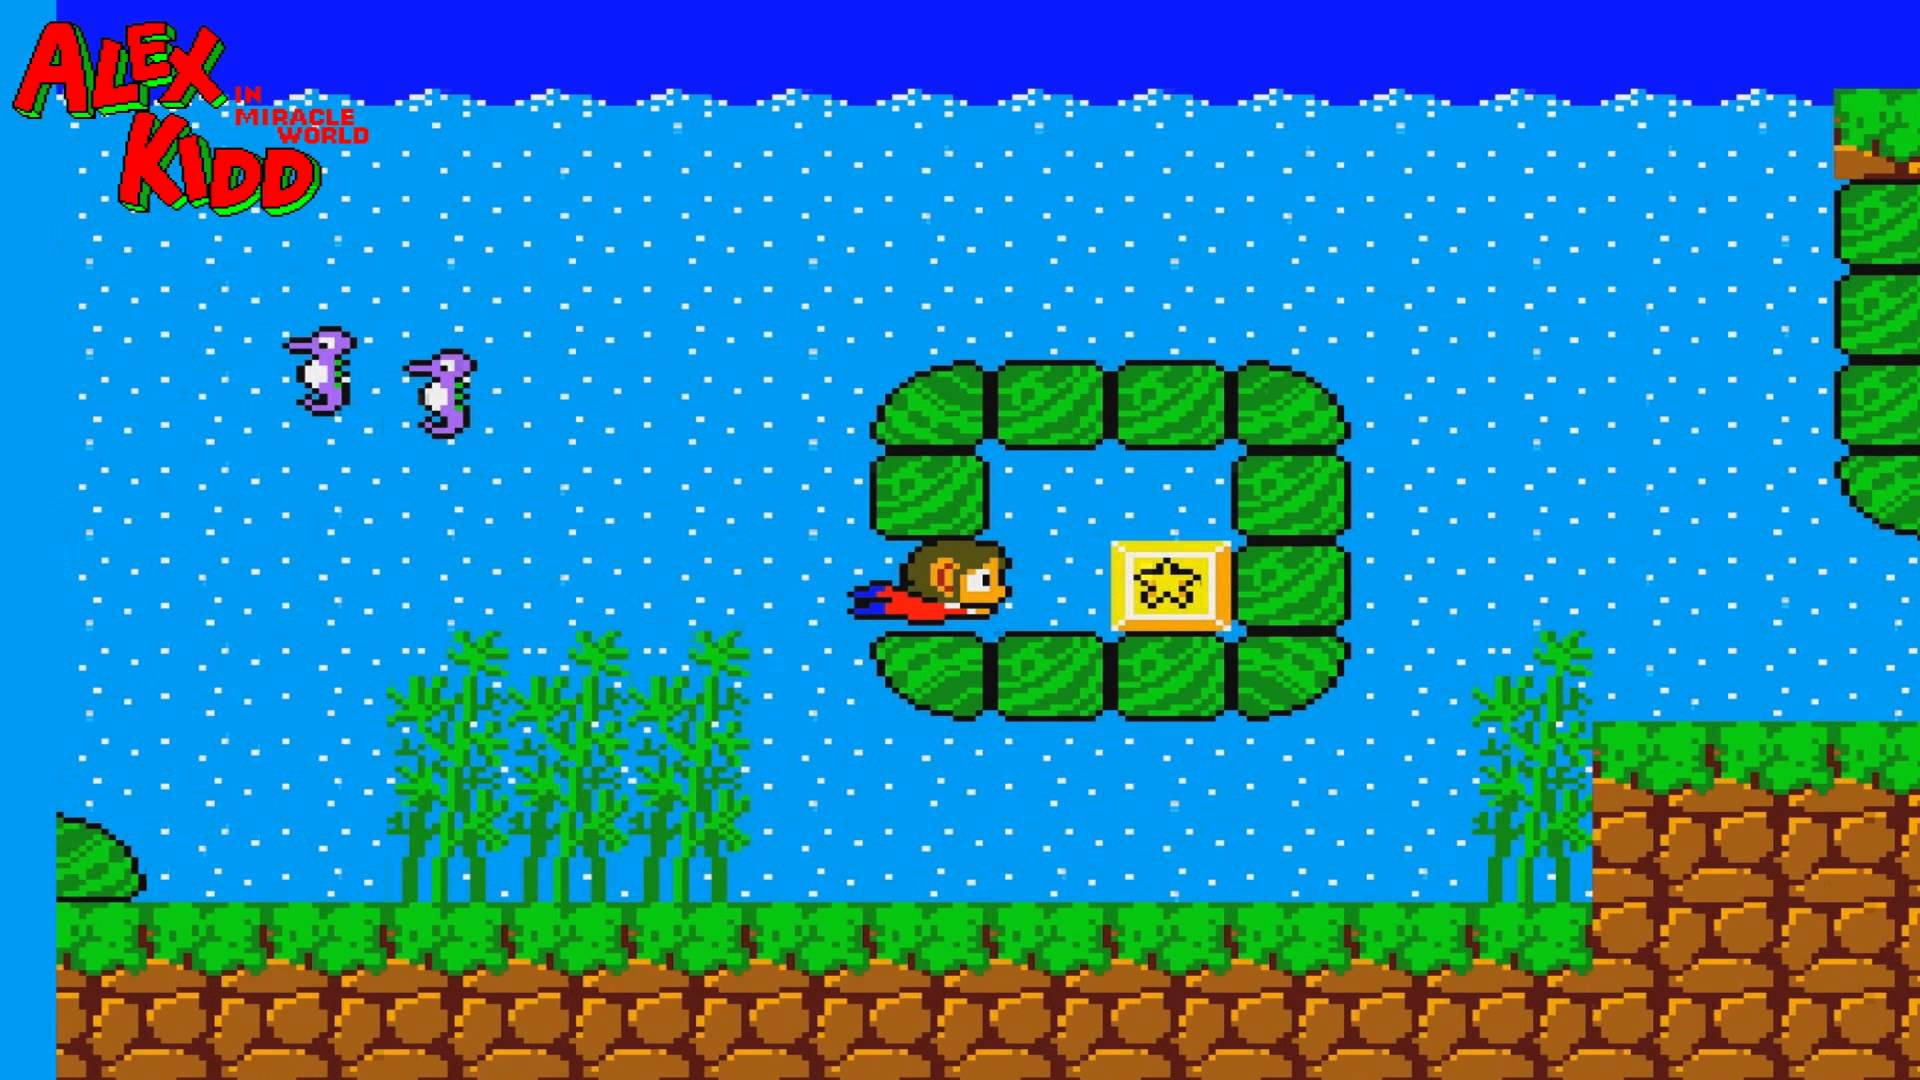 how to play alex kidd miracle world